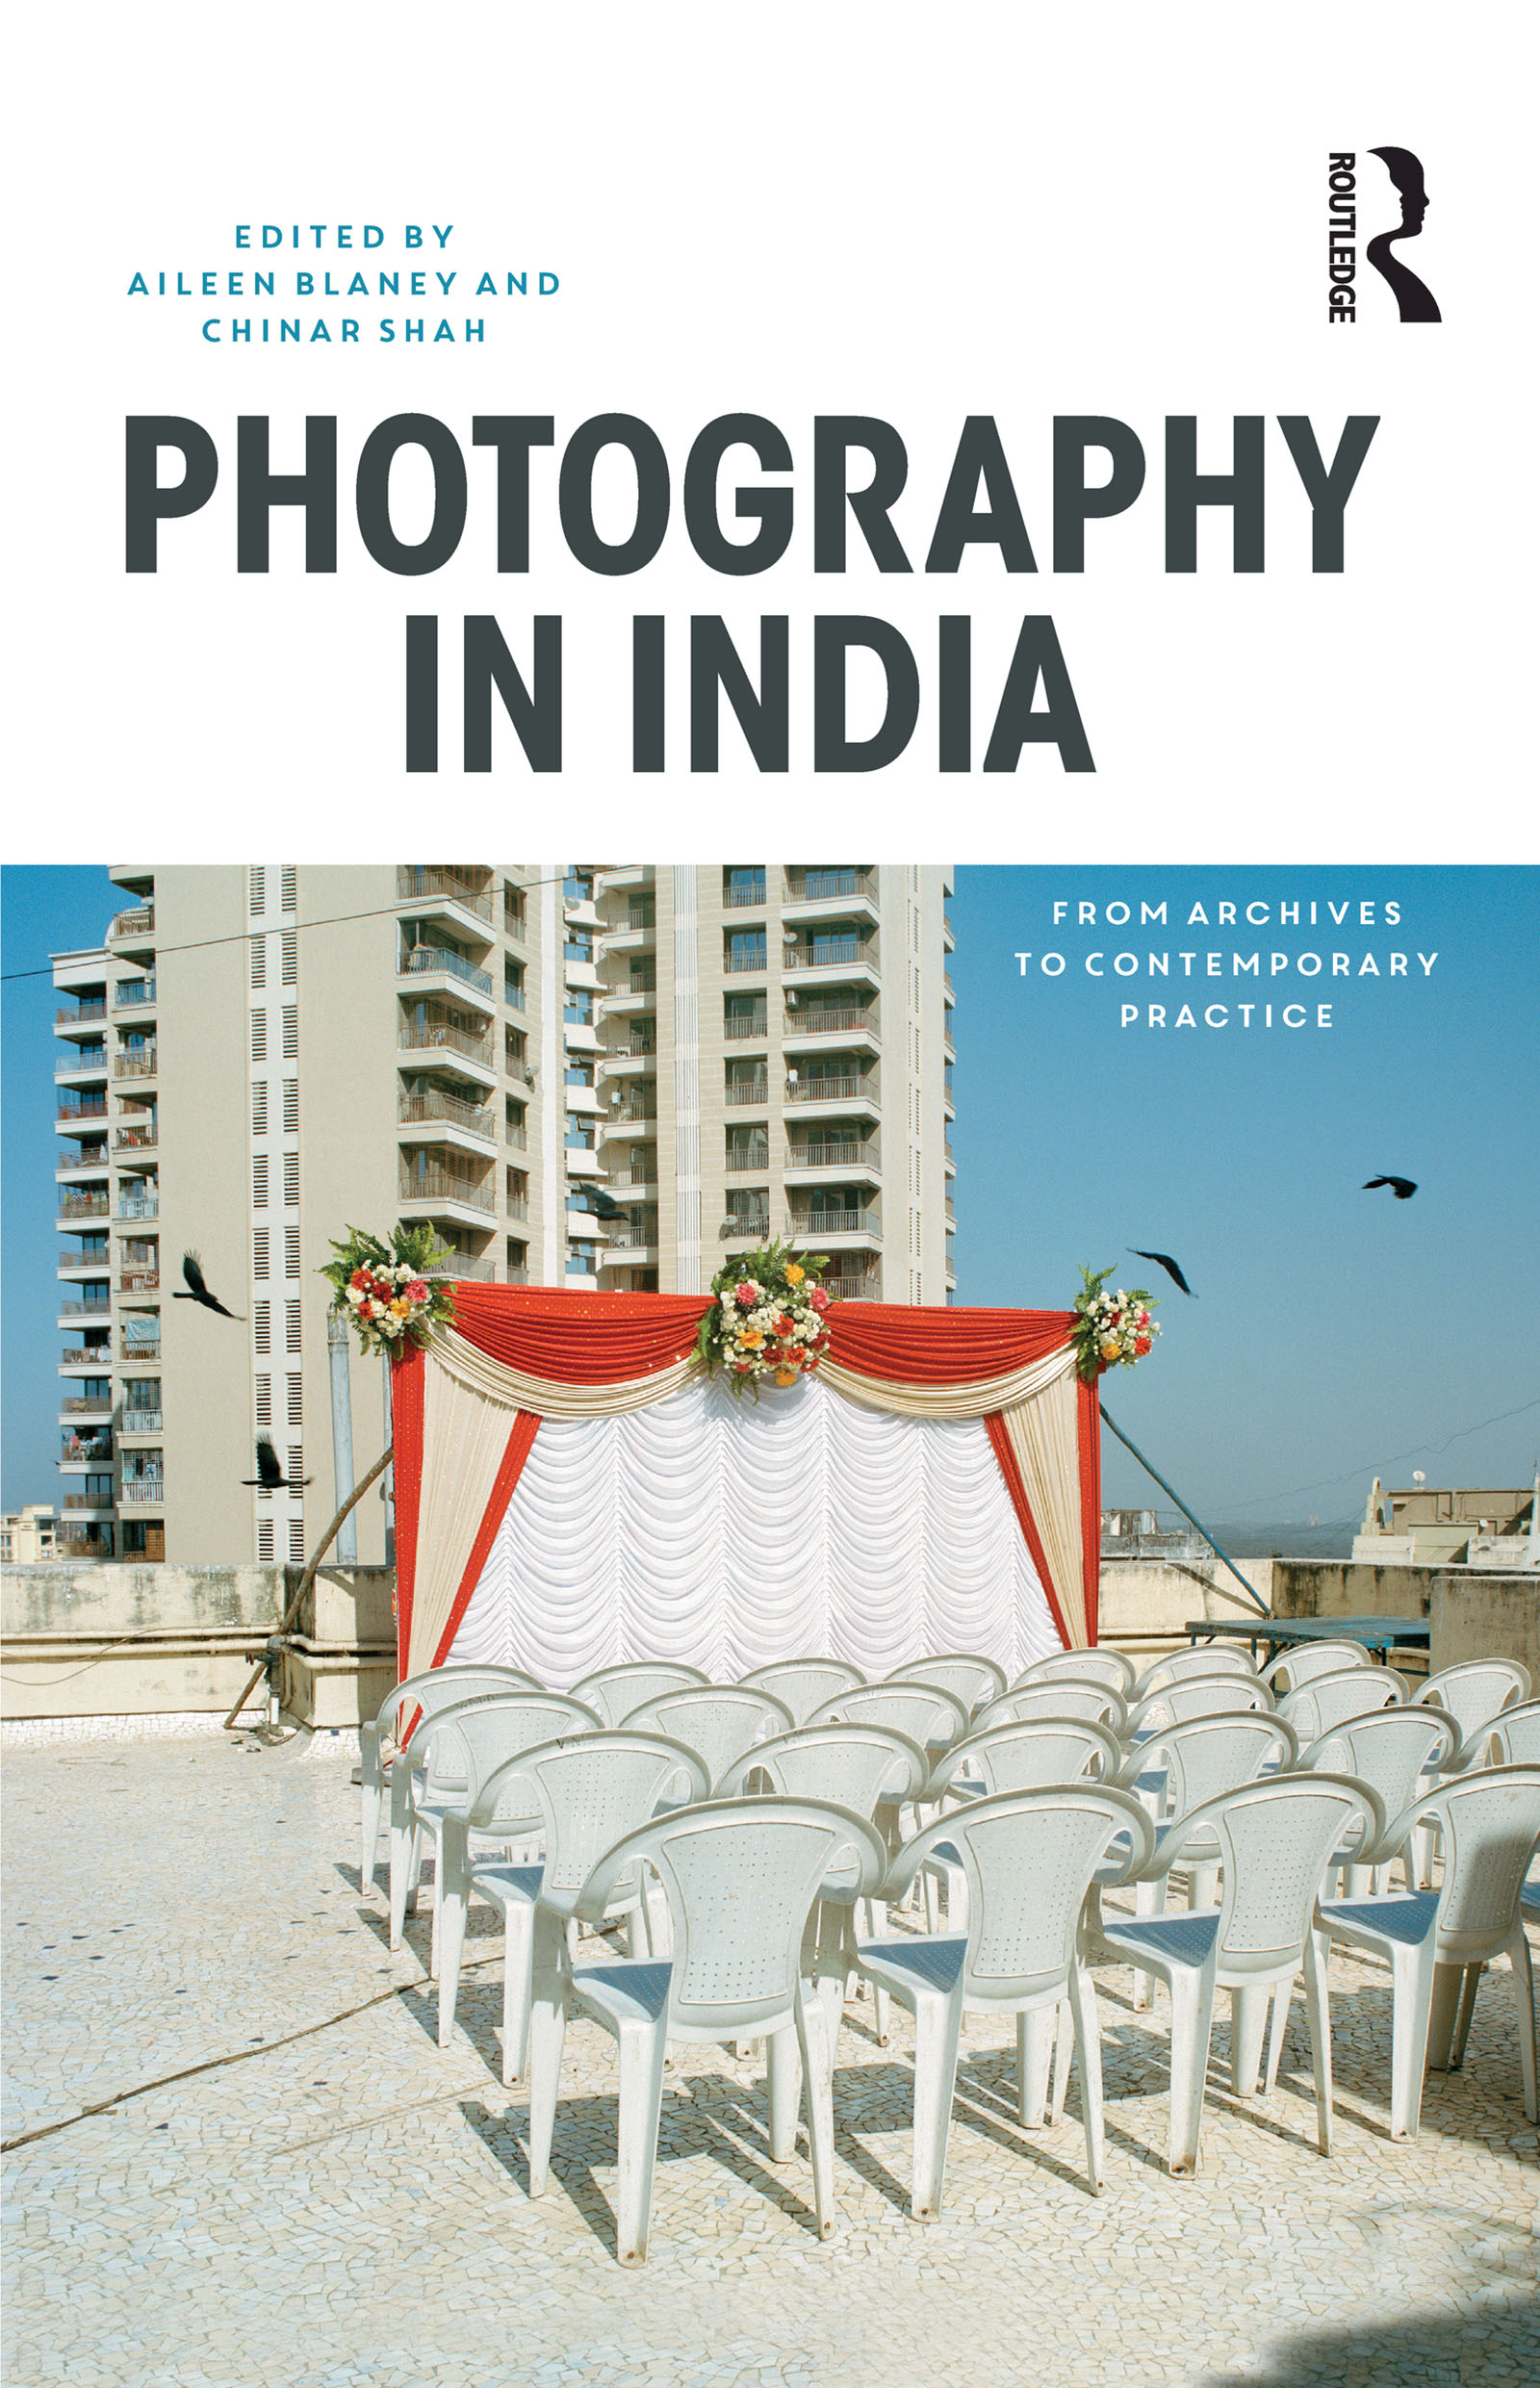 Interrogating 'Credible Chhattisgarh': Photography and the Construction of a New Indian State